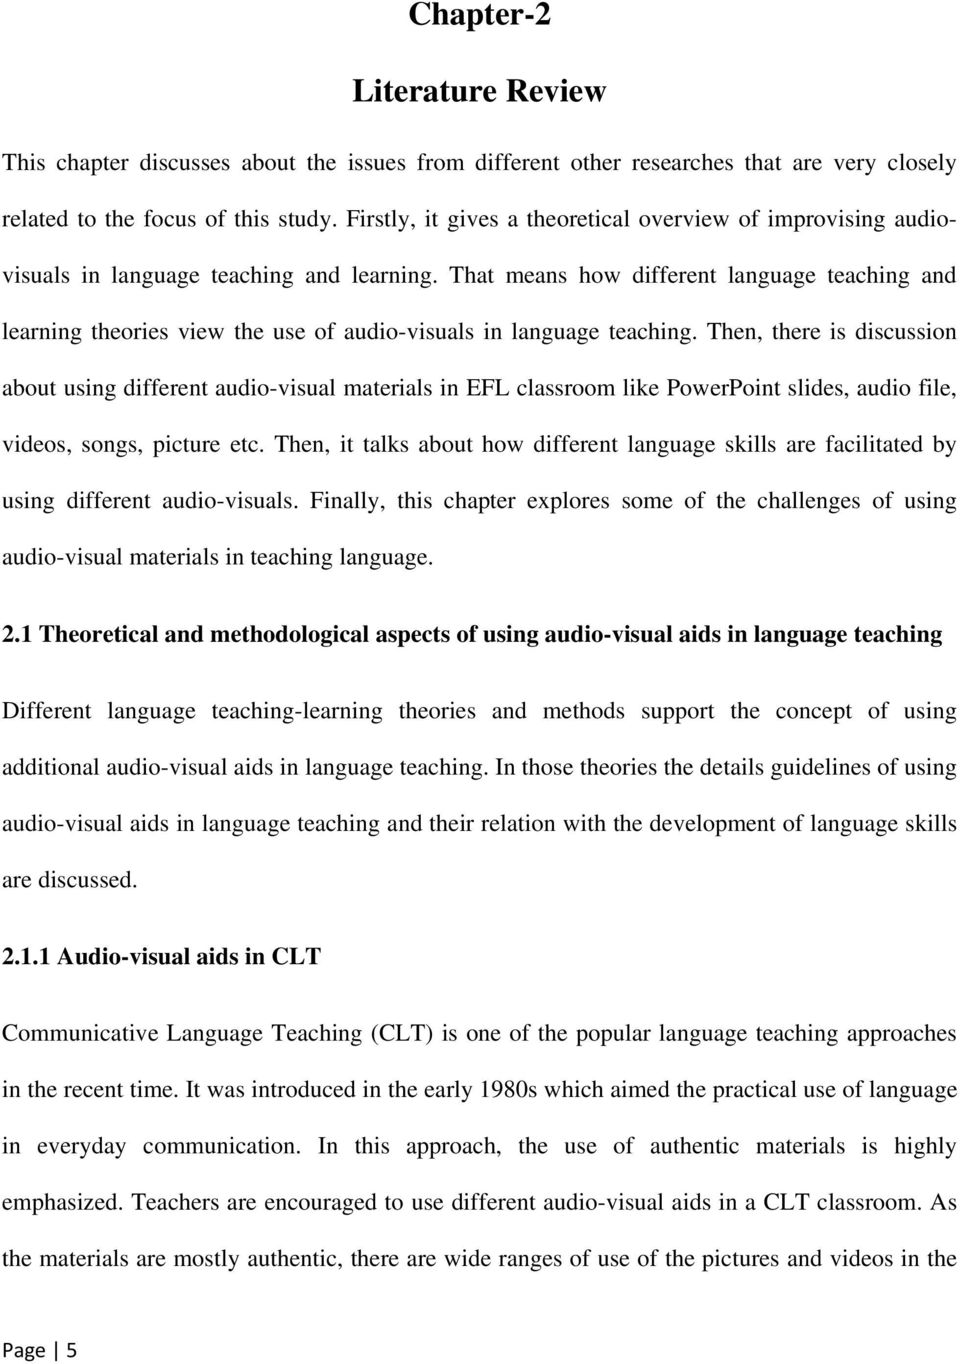 Effectiveness of Audio-visual Aids in Language Teaching in